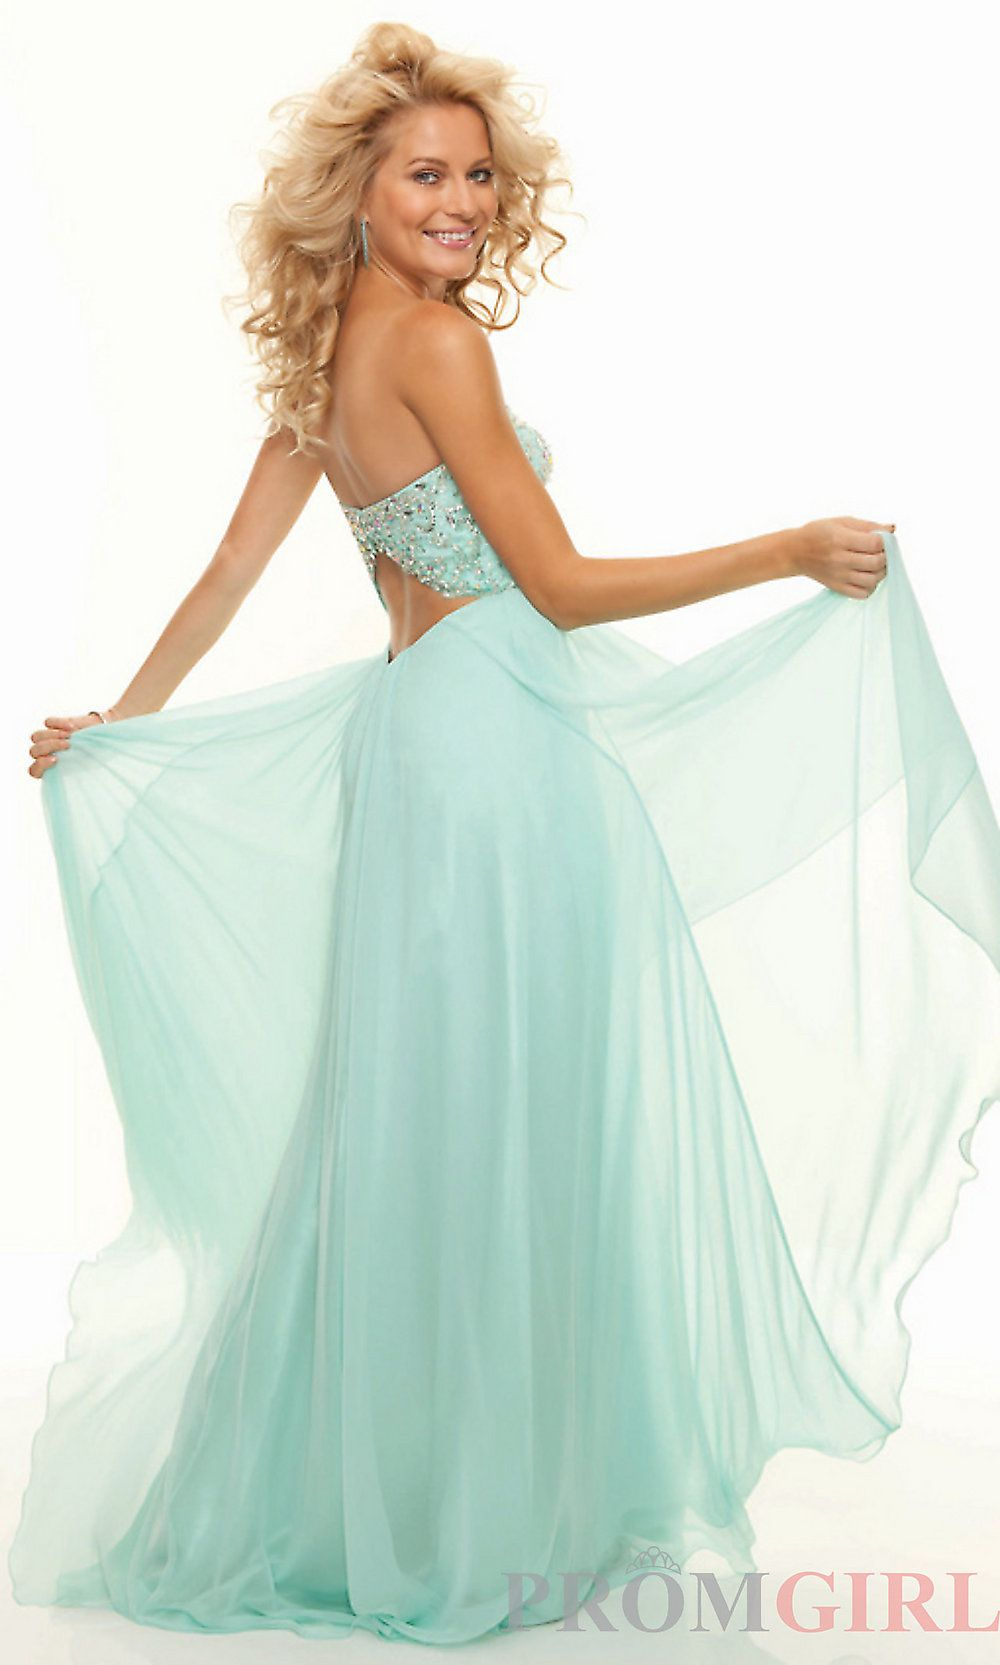 Dorable Cheap Prom Dresses On Ebay Crest - Wedding Dress Ideas ...